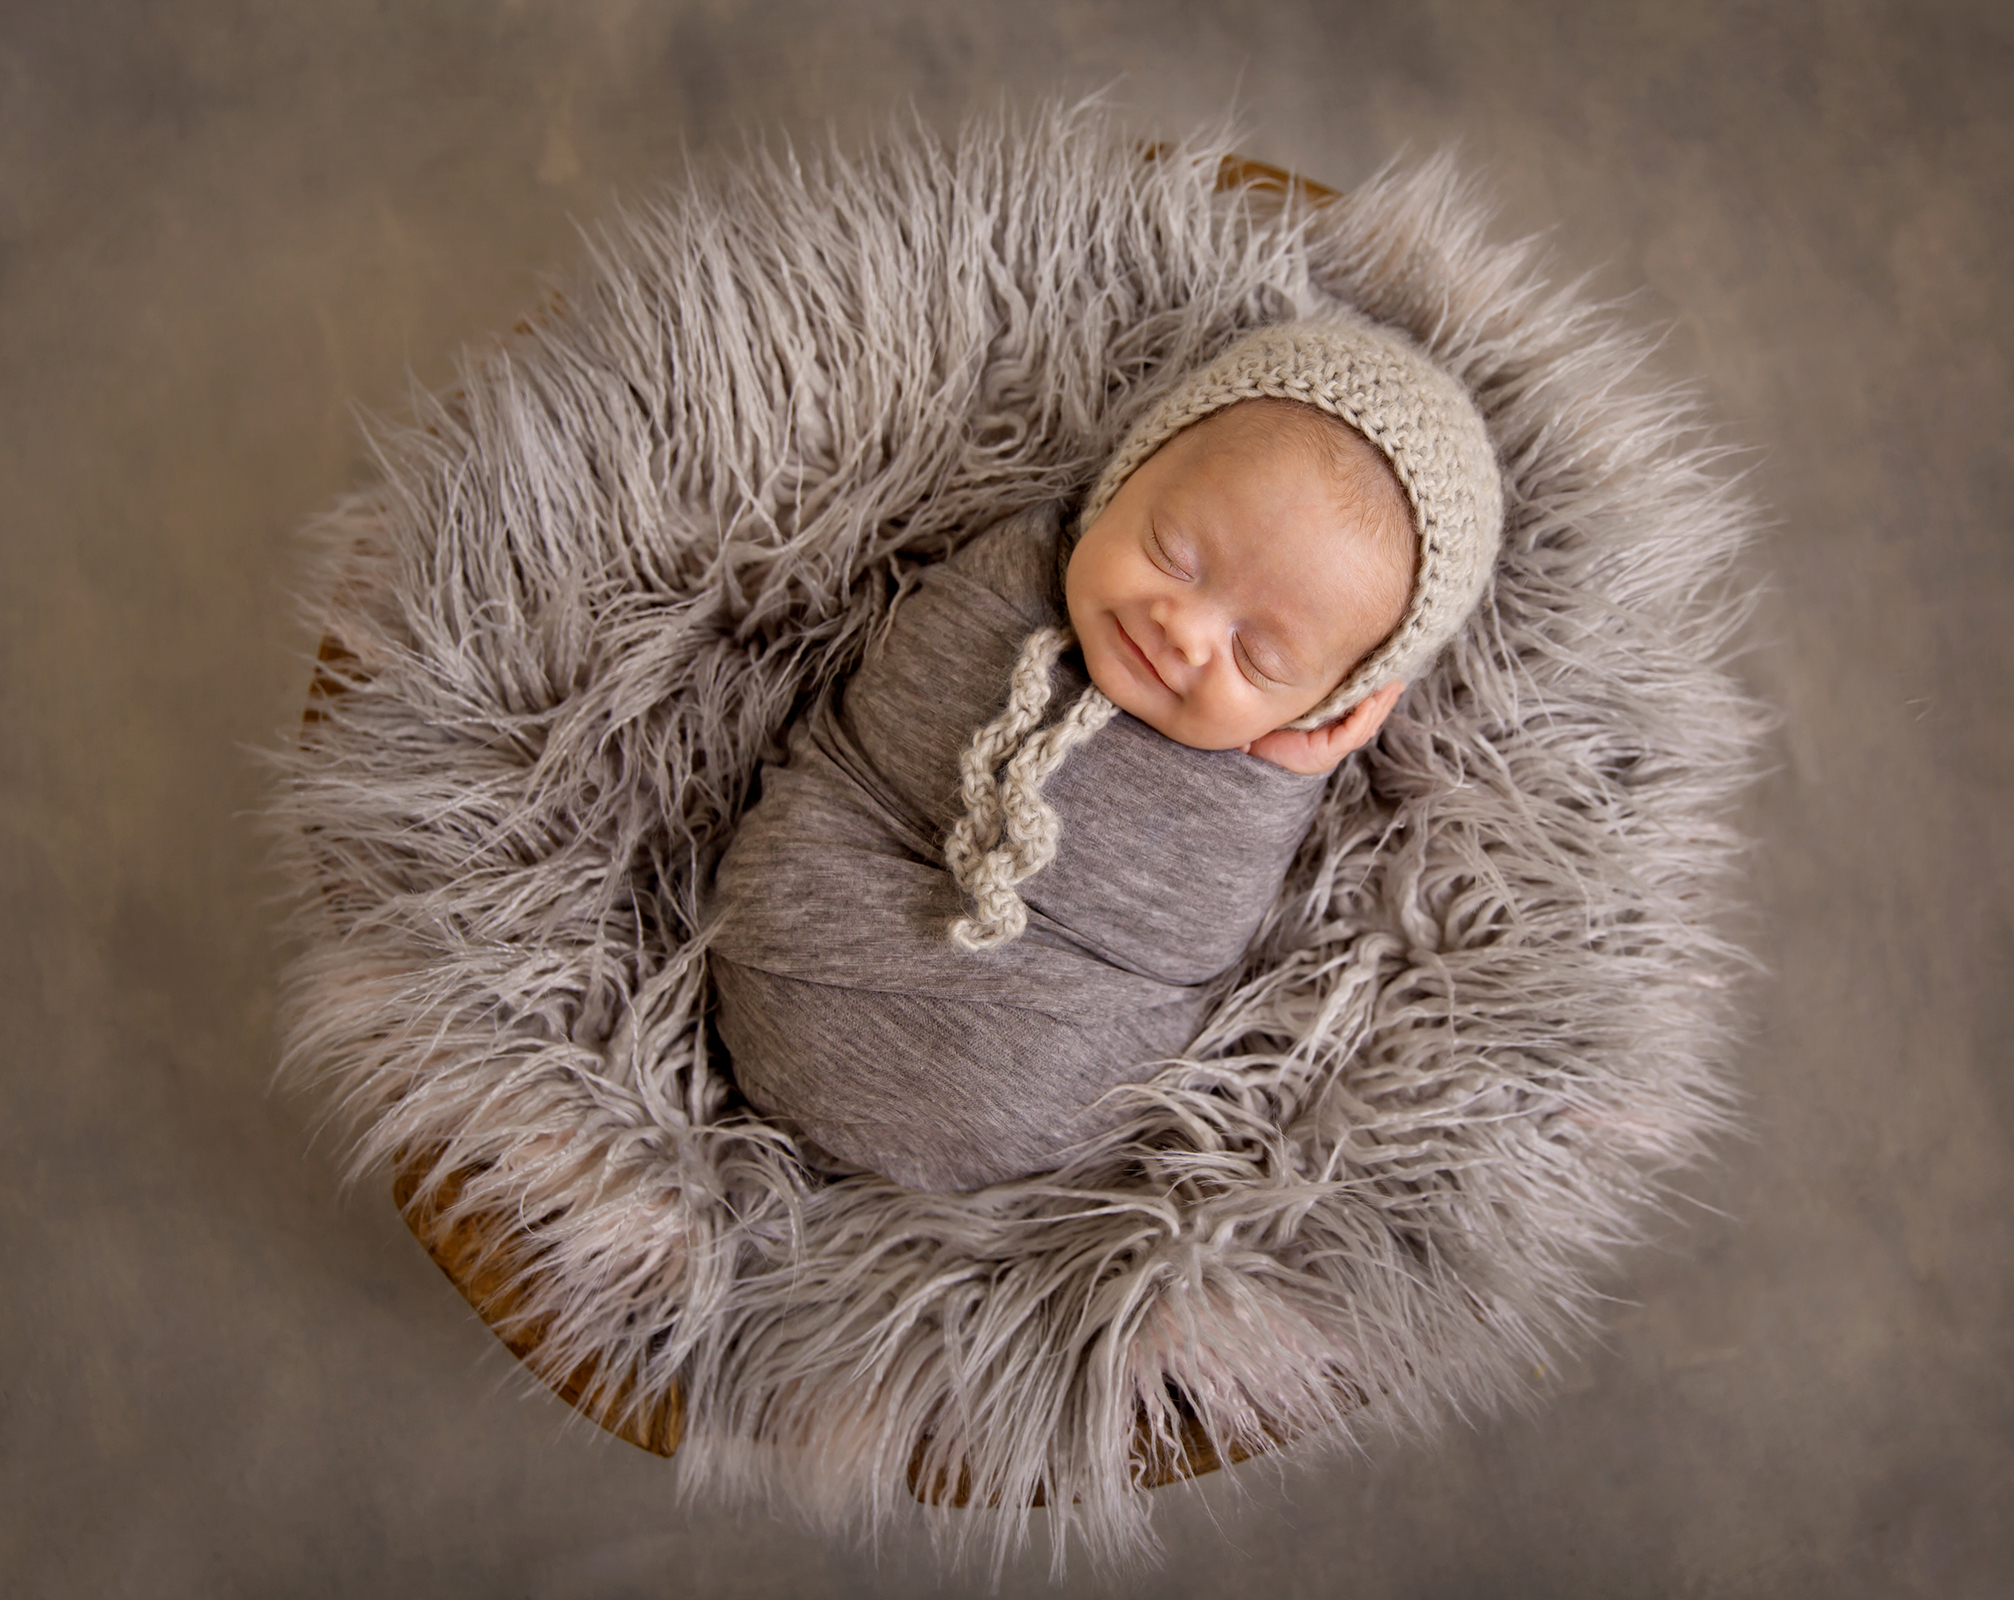 Smiling newborn baby photography beautiful newborn photography newborn photoshoot in basket